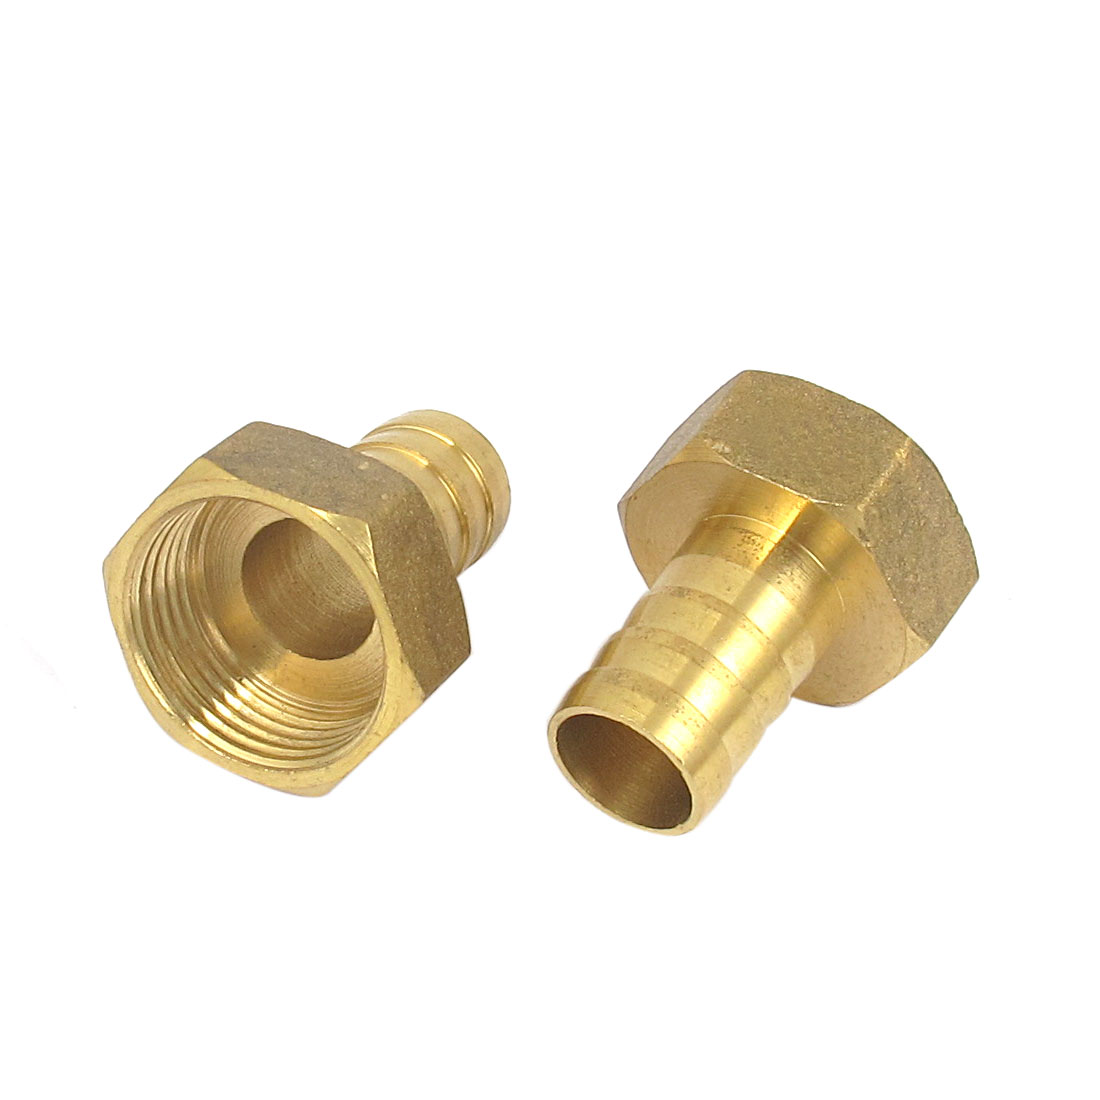 Brass 16mm Hose Barb 3/4BSP Female Thread Quick Joint Connector Adapter 2PCS